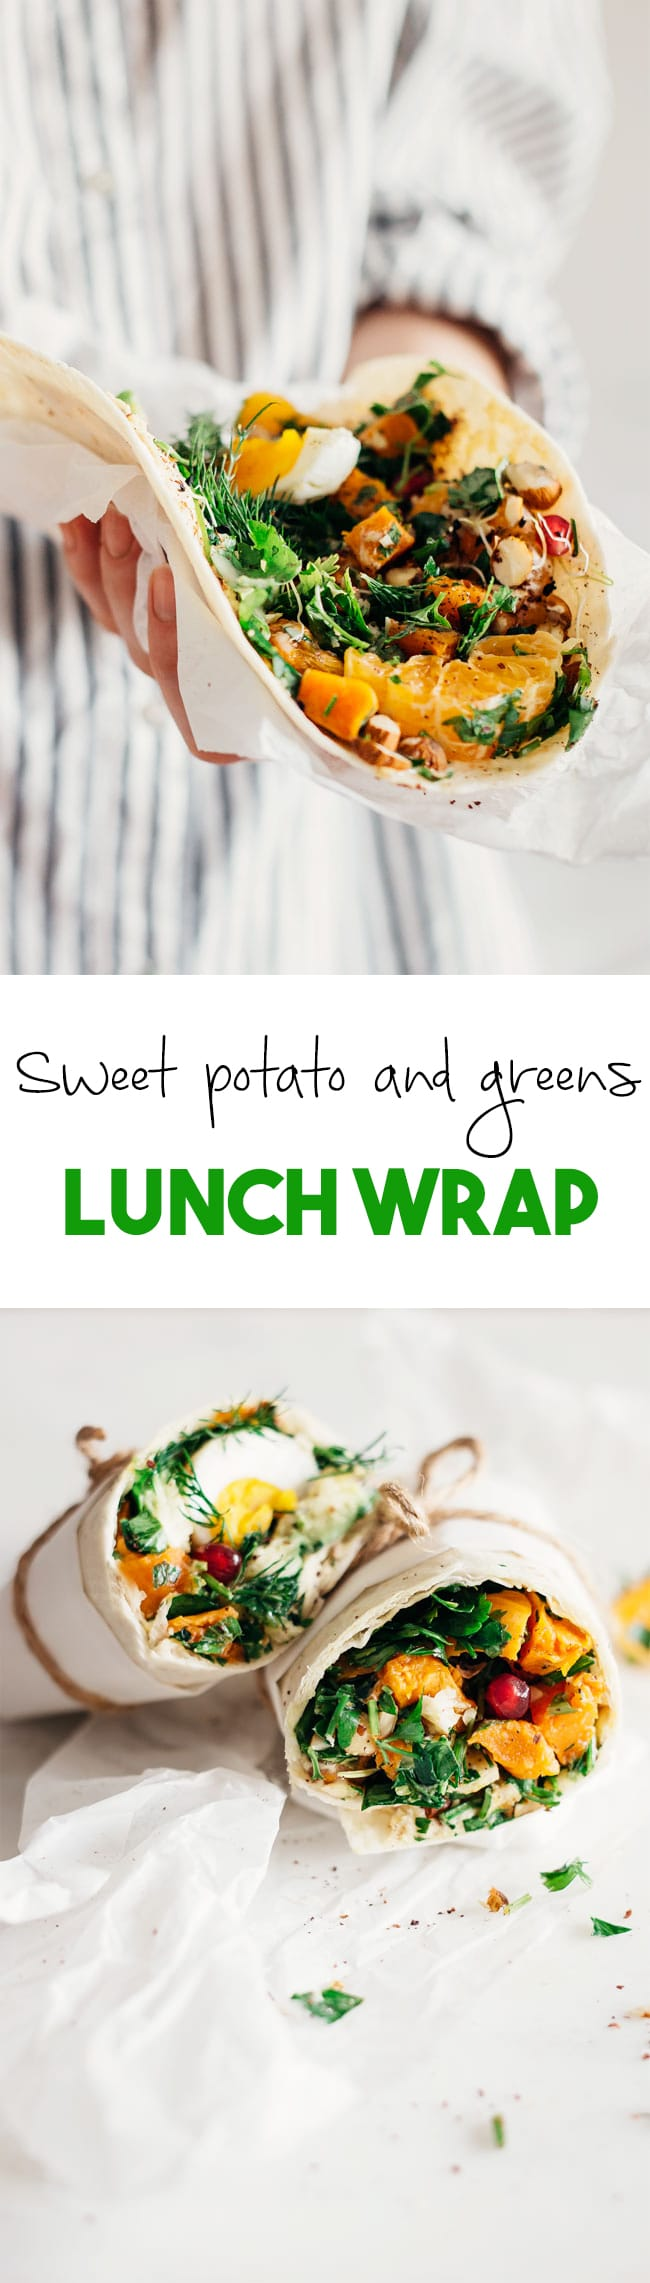 Easy Lunch Wrap with Sweet Potato, Hummus and Greens | The Awesome Green